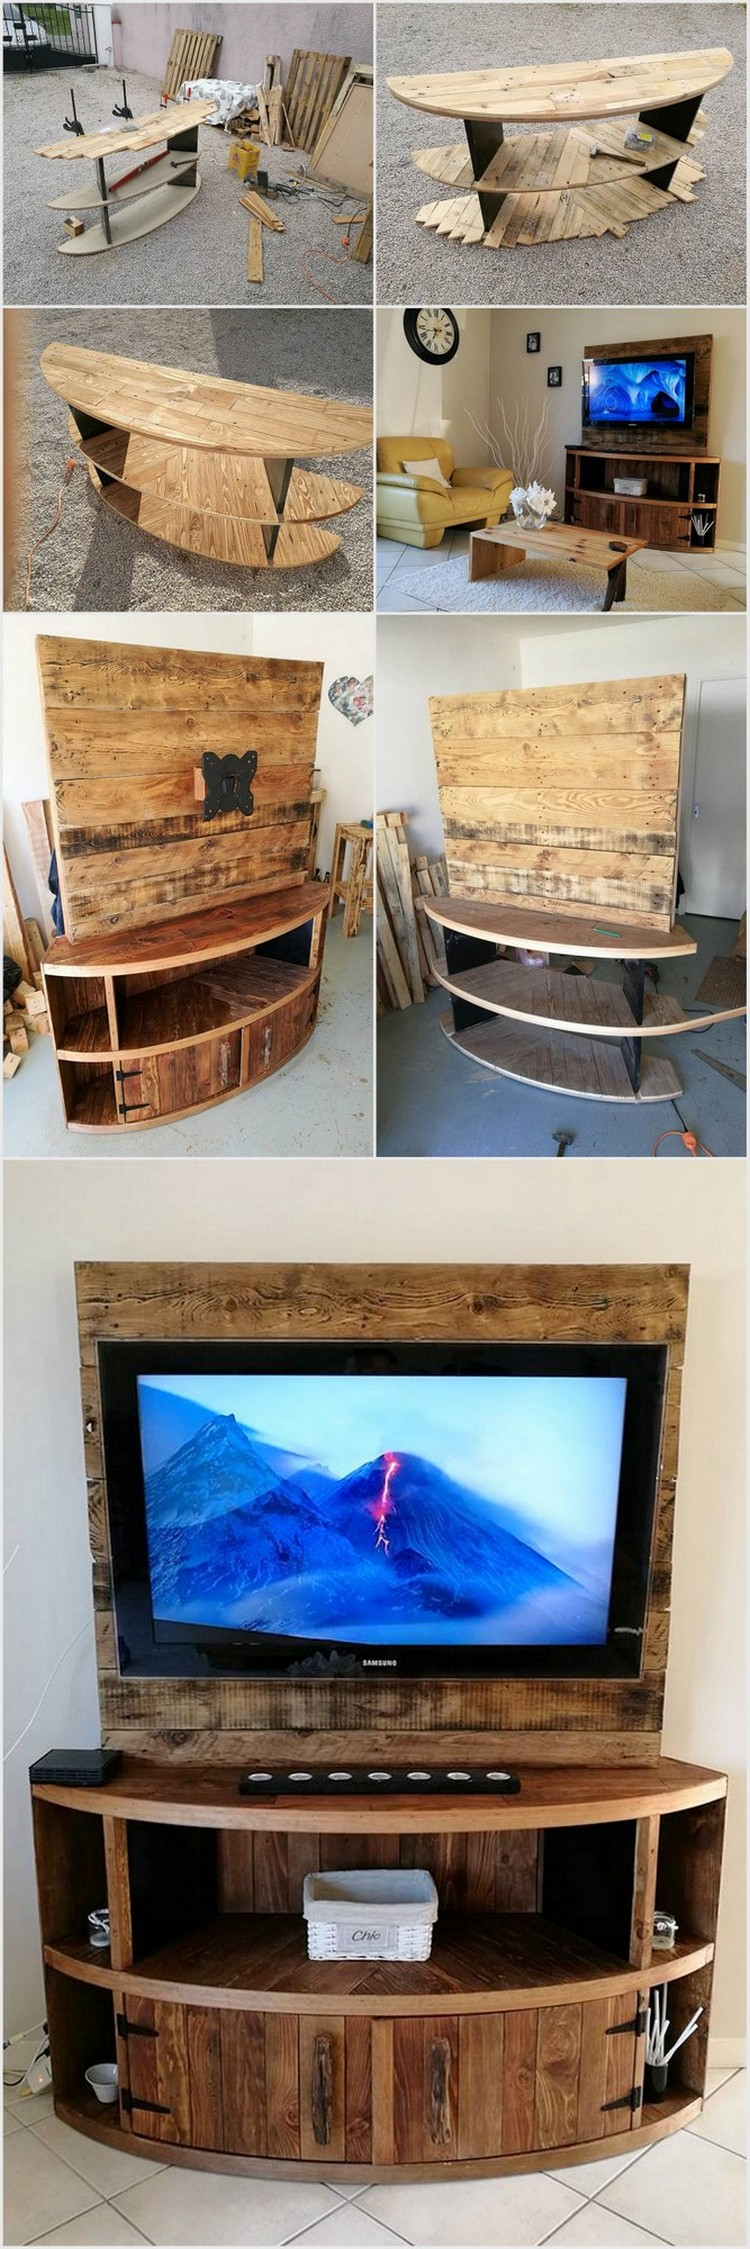 diy pallet entertainment center diy wood pallet entertainment center tv stand pallet 678